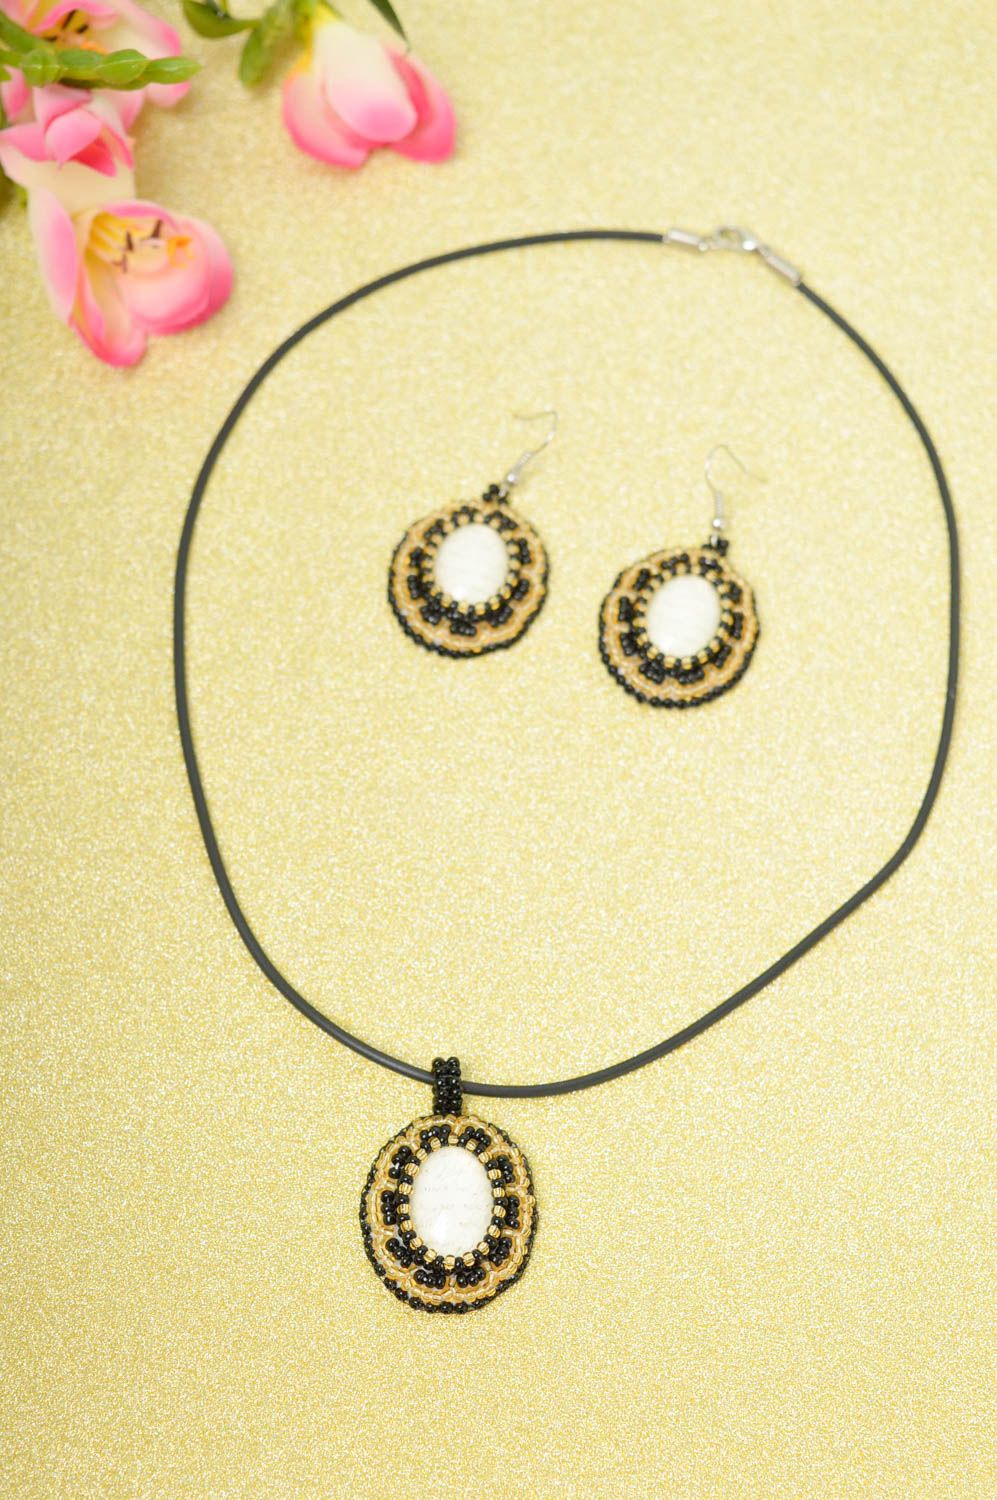 Beautiful handmade cabochon earrings pendant necklace metal jewelry set photo 1